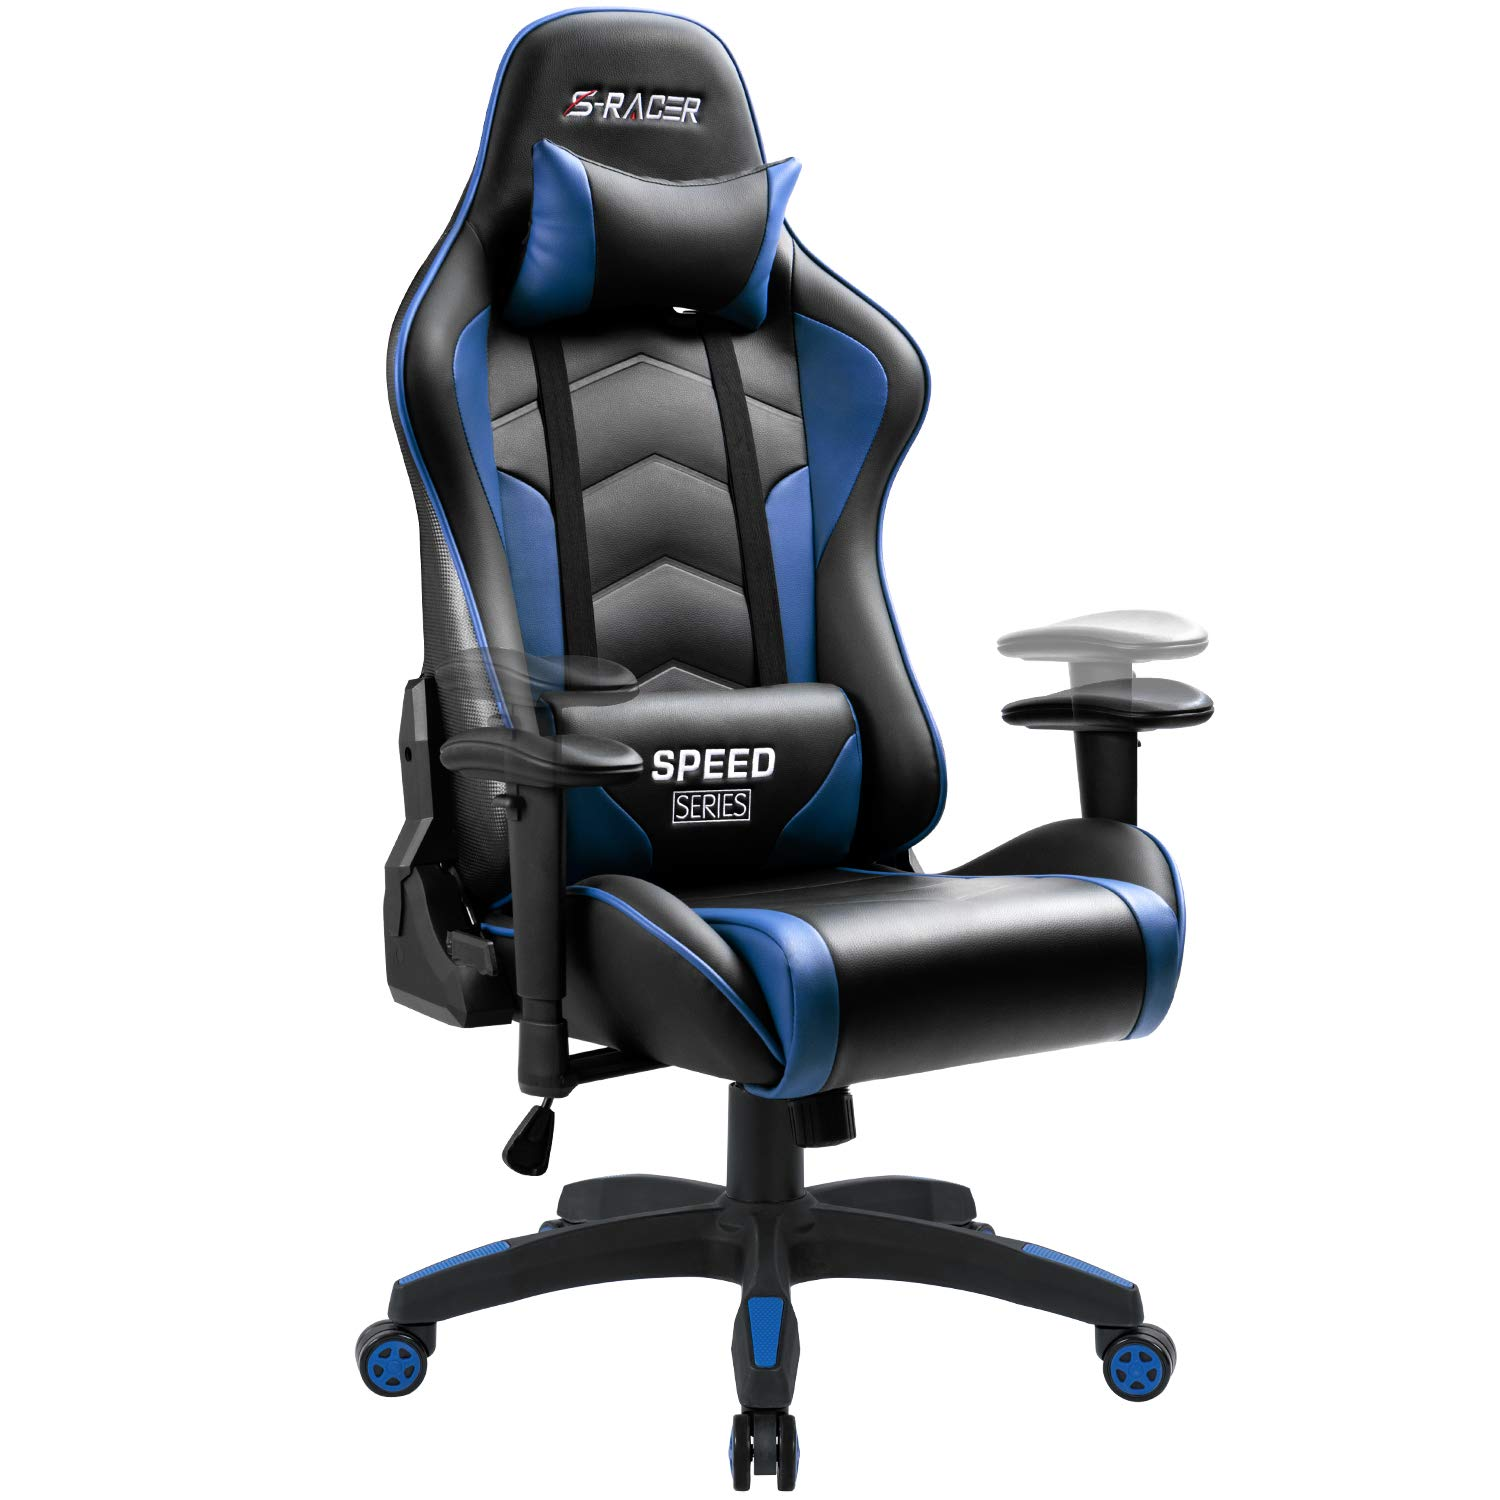 Homall Gaming Chair High Back Computer Chair Racing Style Office Chair Embossing Design Pu Leather Bucket Seat Desk Chair with Adjustable Armrest Ergonomic Headrest and lumbar Support (Blue) by Homall